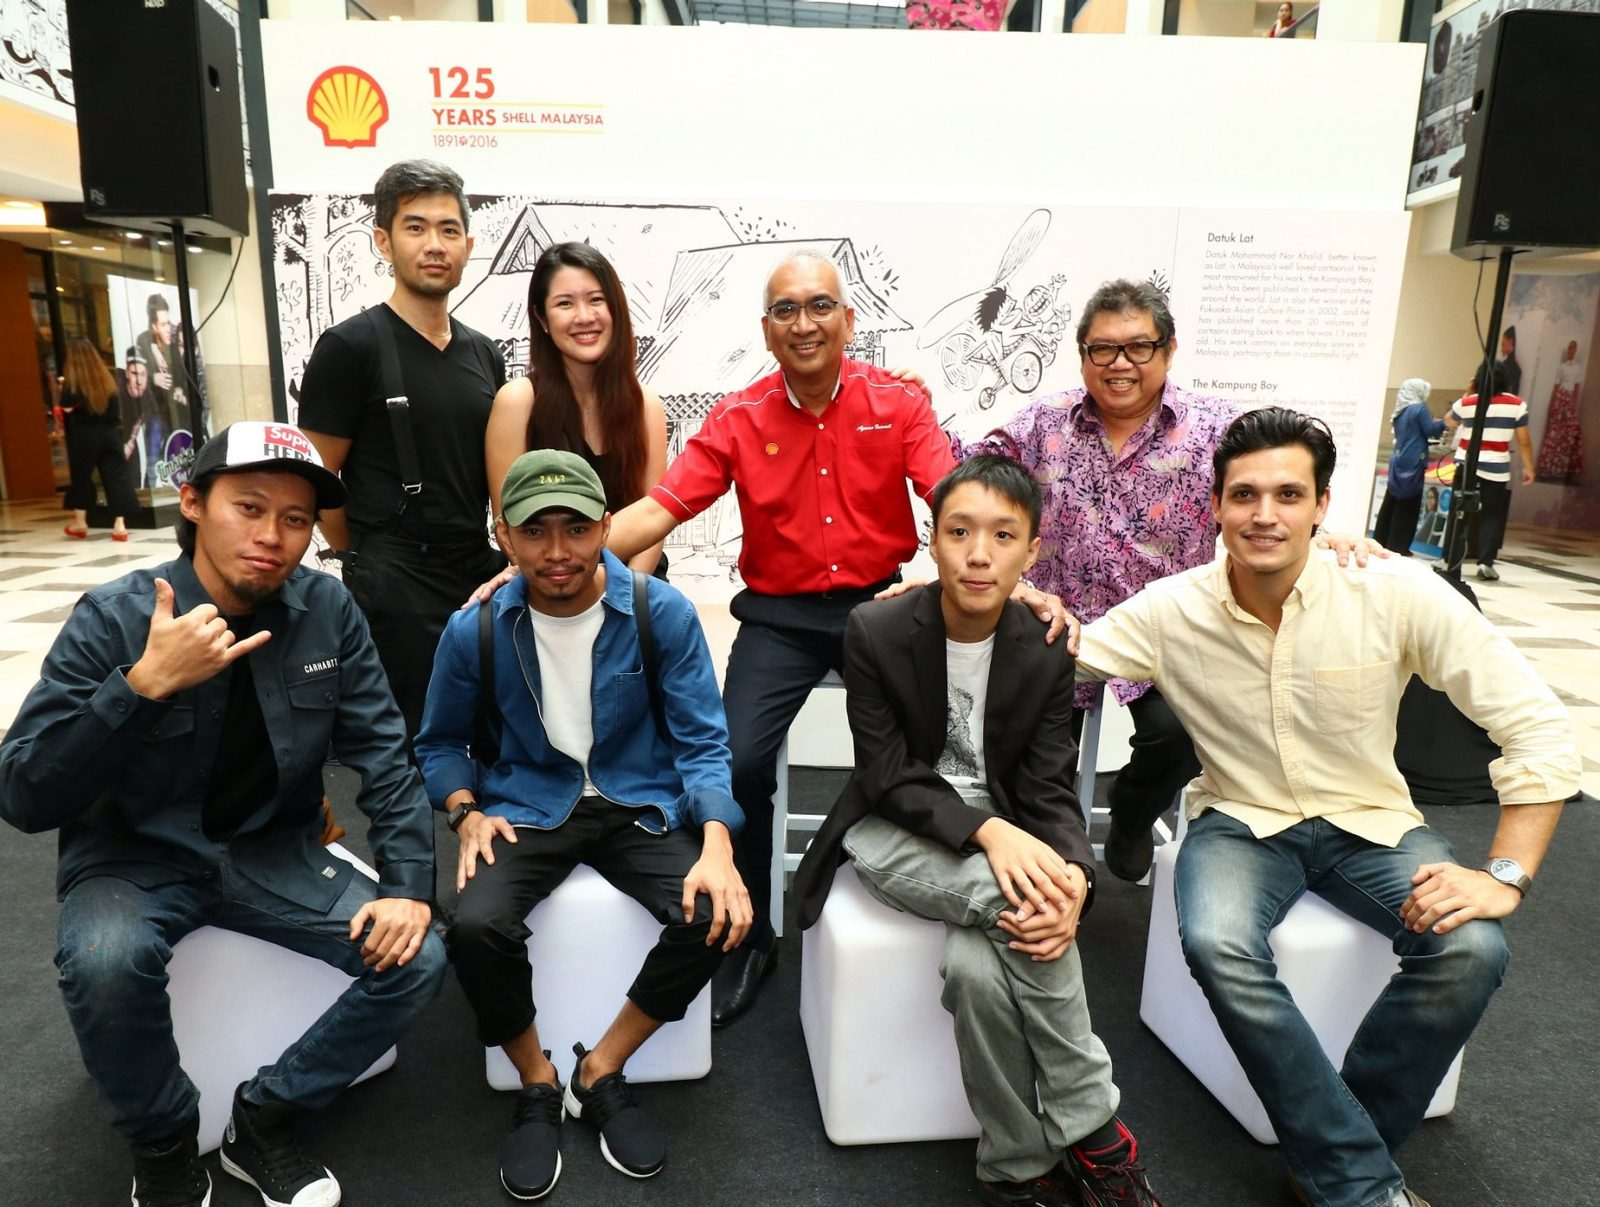 Datuk Azman Ismail, Managing Director, Shell Malaysia Trading Sdn. Bhd. and Shell Timur Sdn. Bhd. (second from right, top row) with the artists who are part of the Celebrating 125 Years art project. Left to right (top row): Cheeming Boey, Caryn Koh, Datuk Lat; Left to right (bottom row): Dmojo, Amey Sheikh Ali, Yap Hanzhen and Tom Powell. Photo: shell.com.my